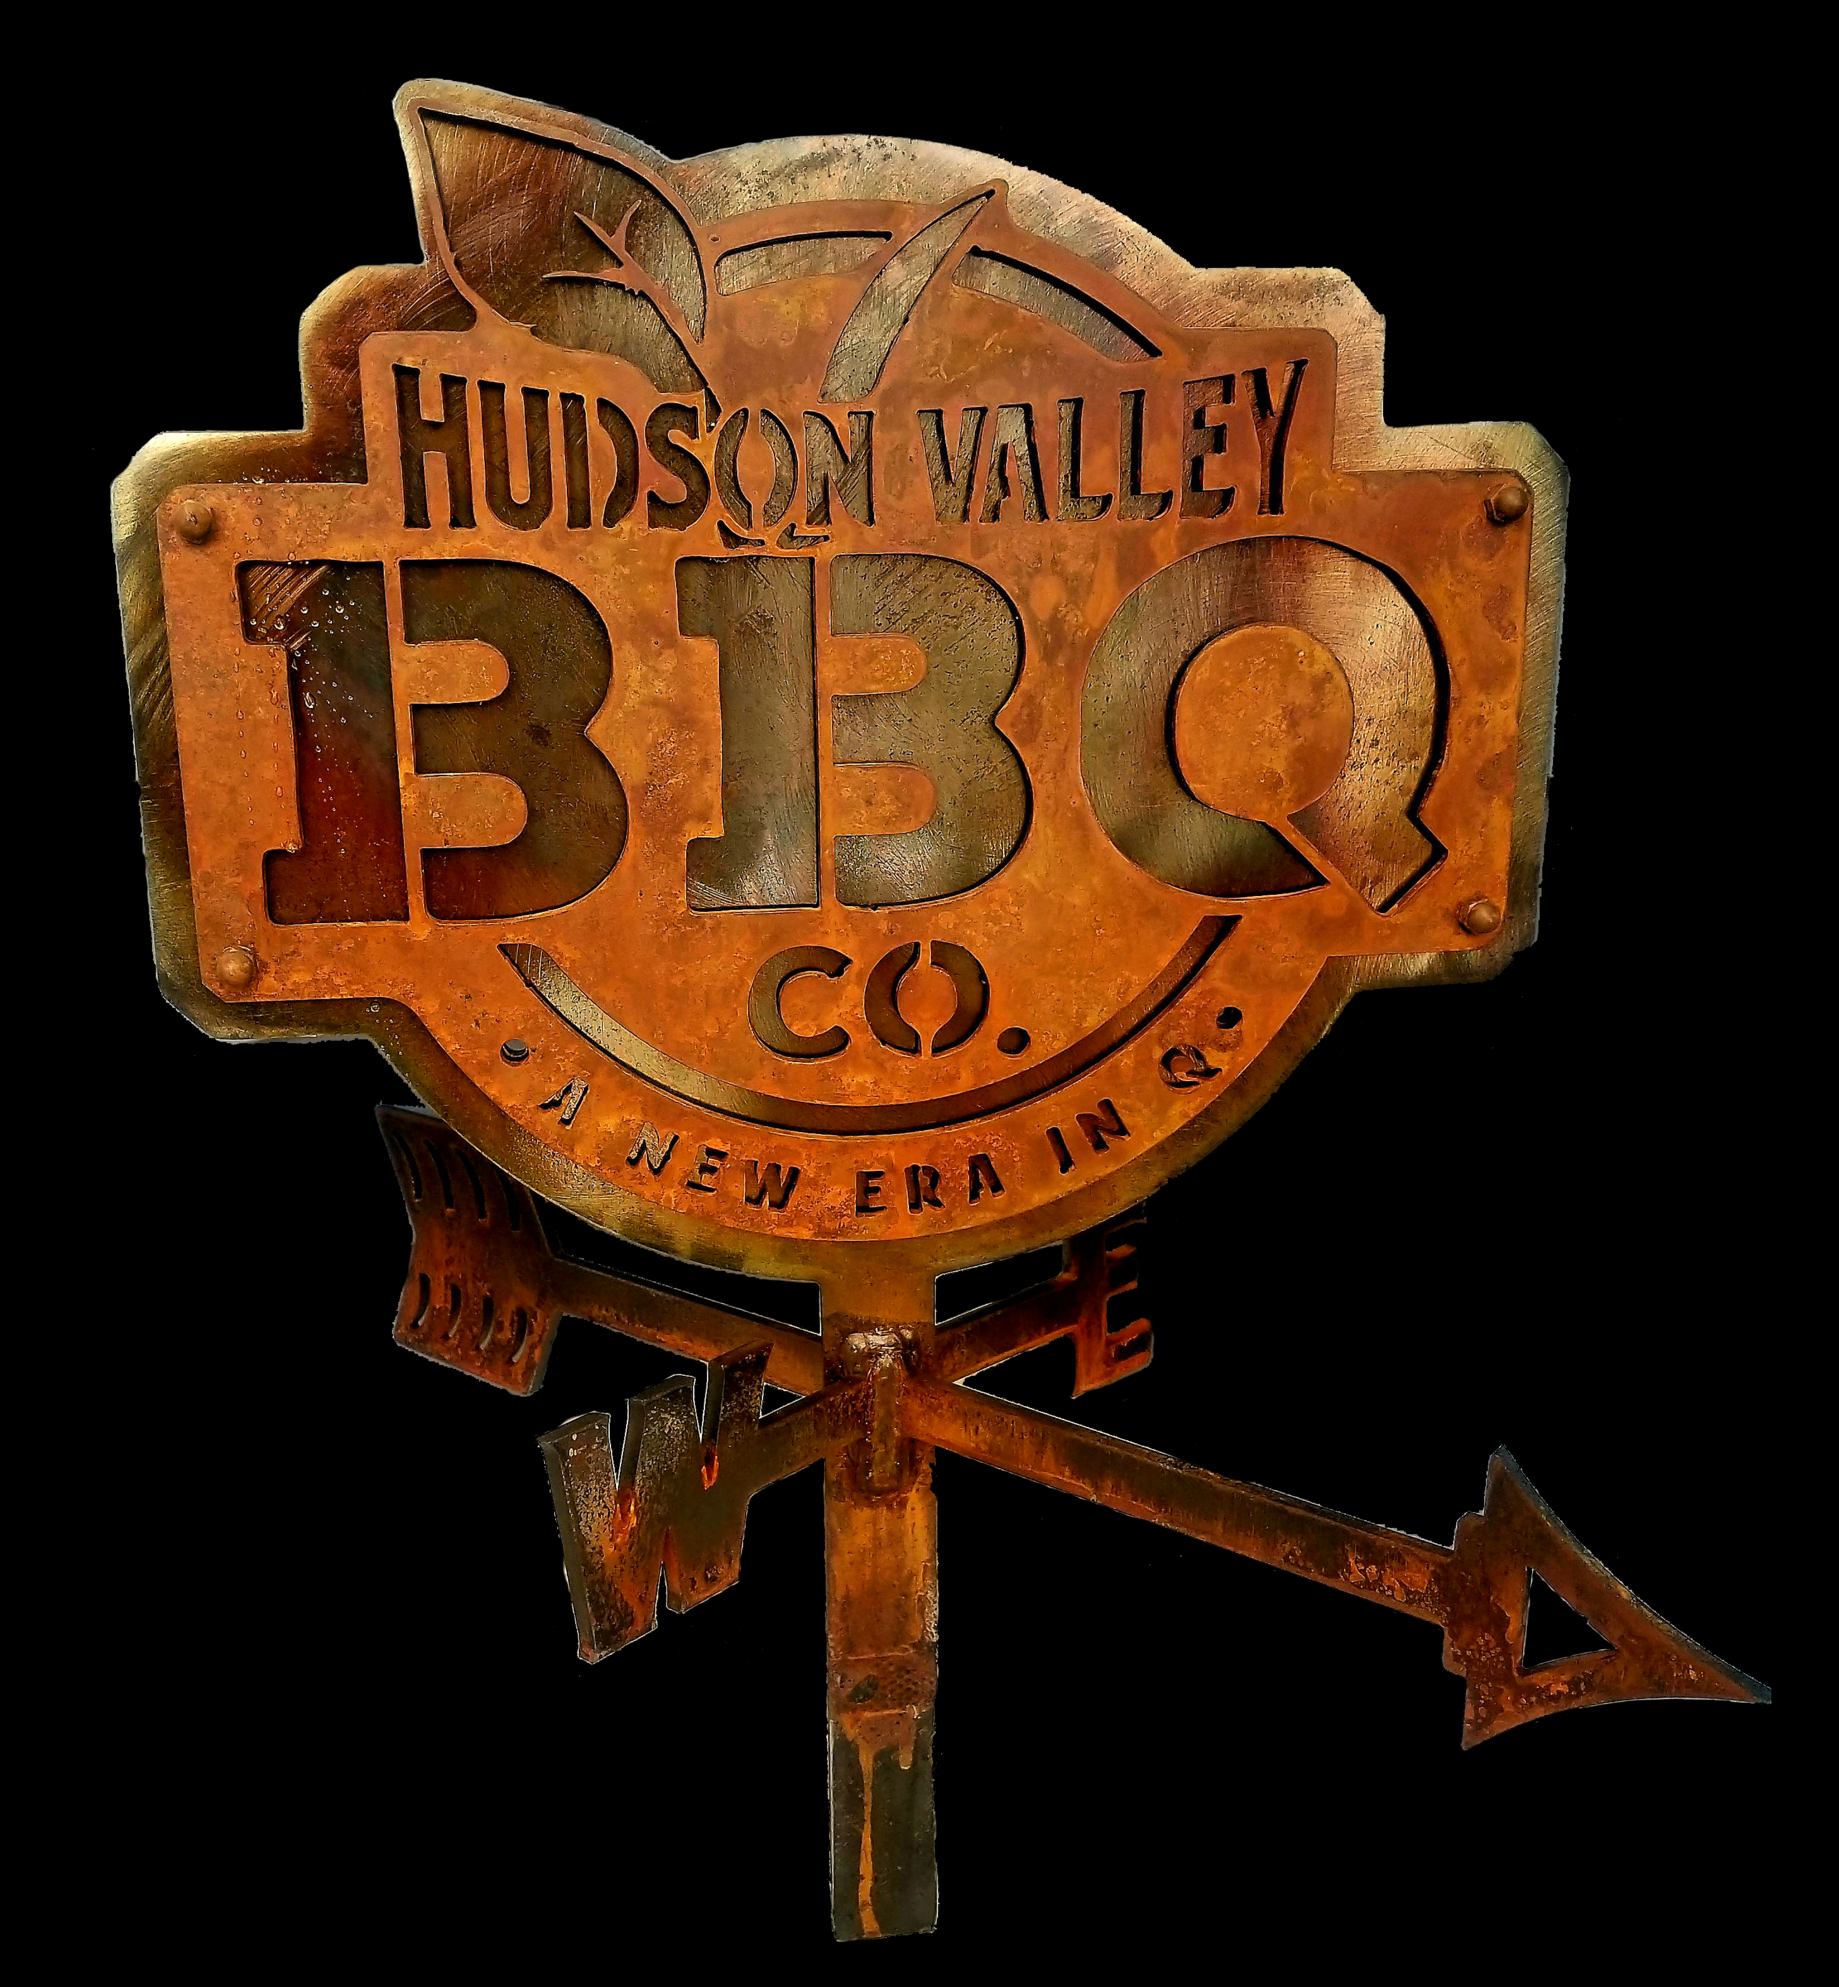 Hudson Valley BBQ Co.